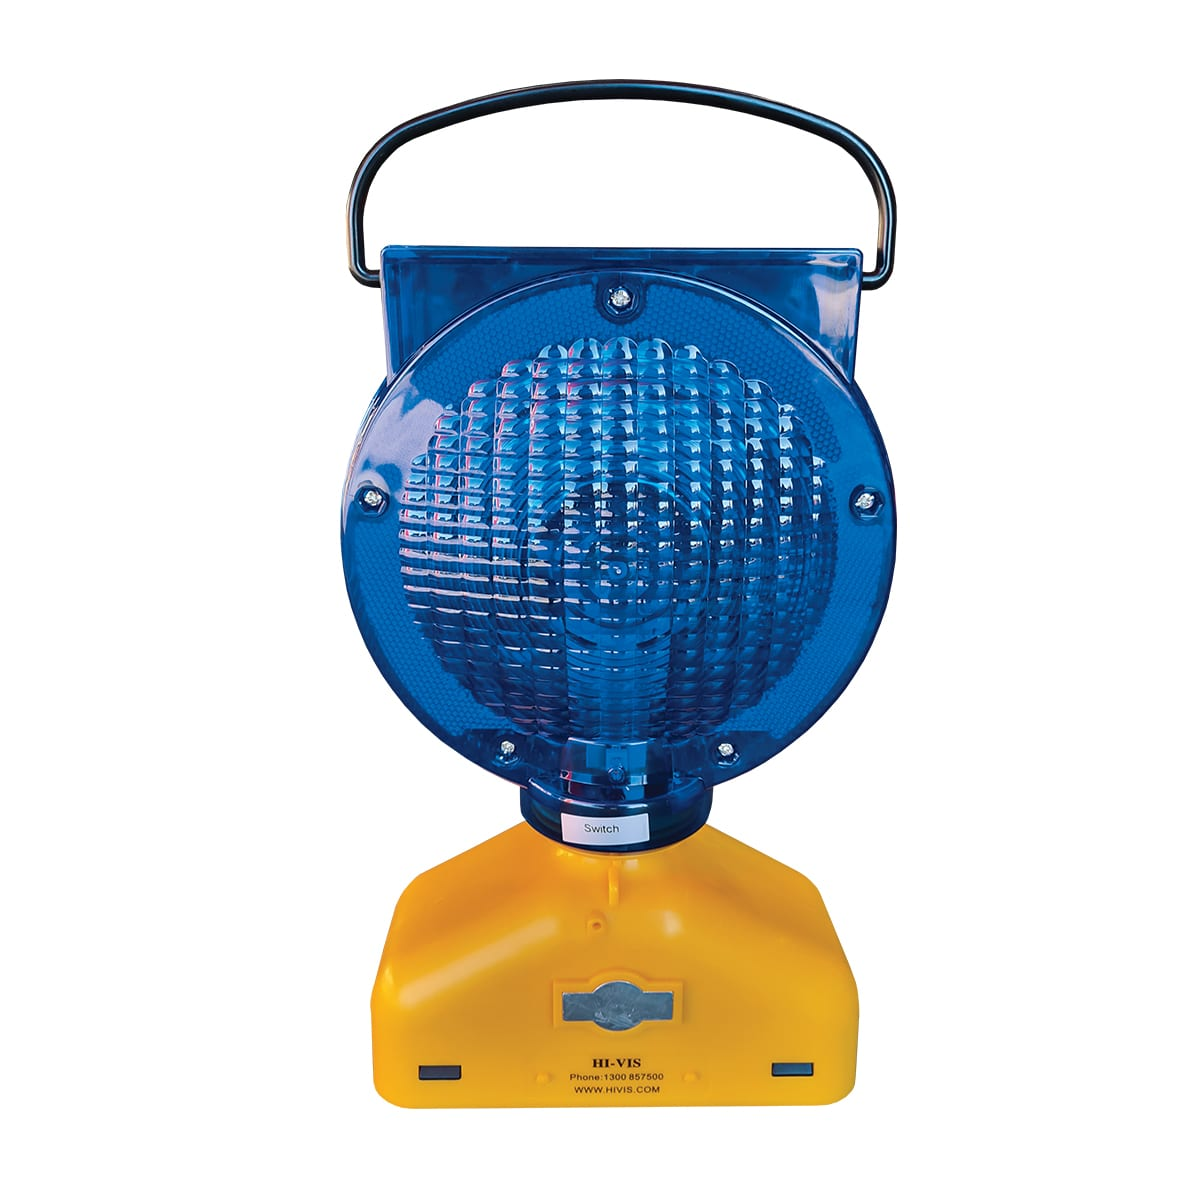 Blue flashing beacon for rail industry